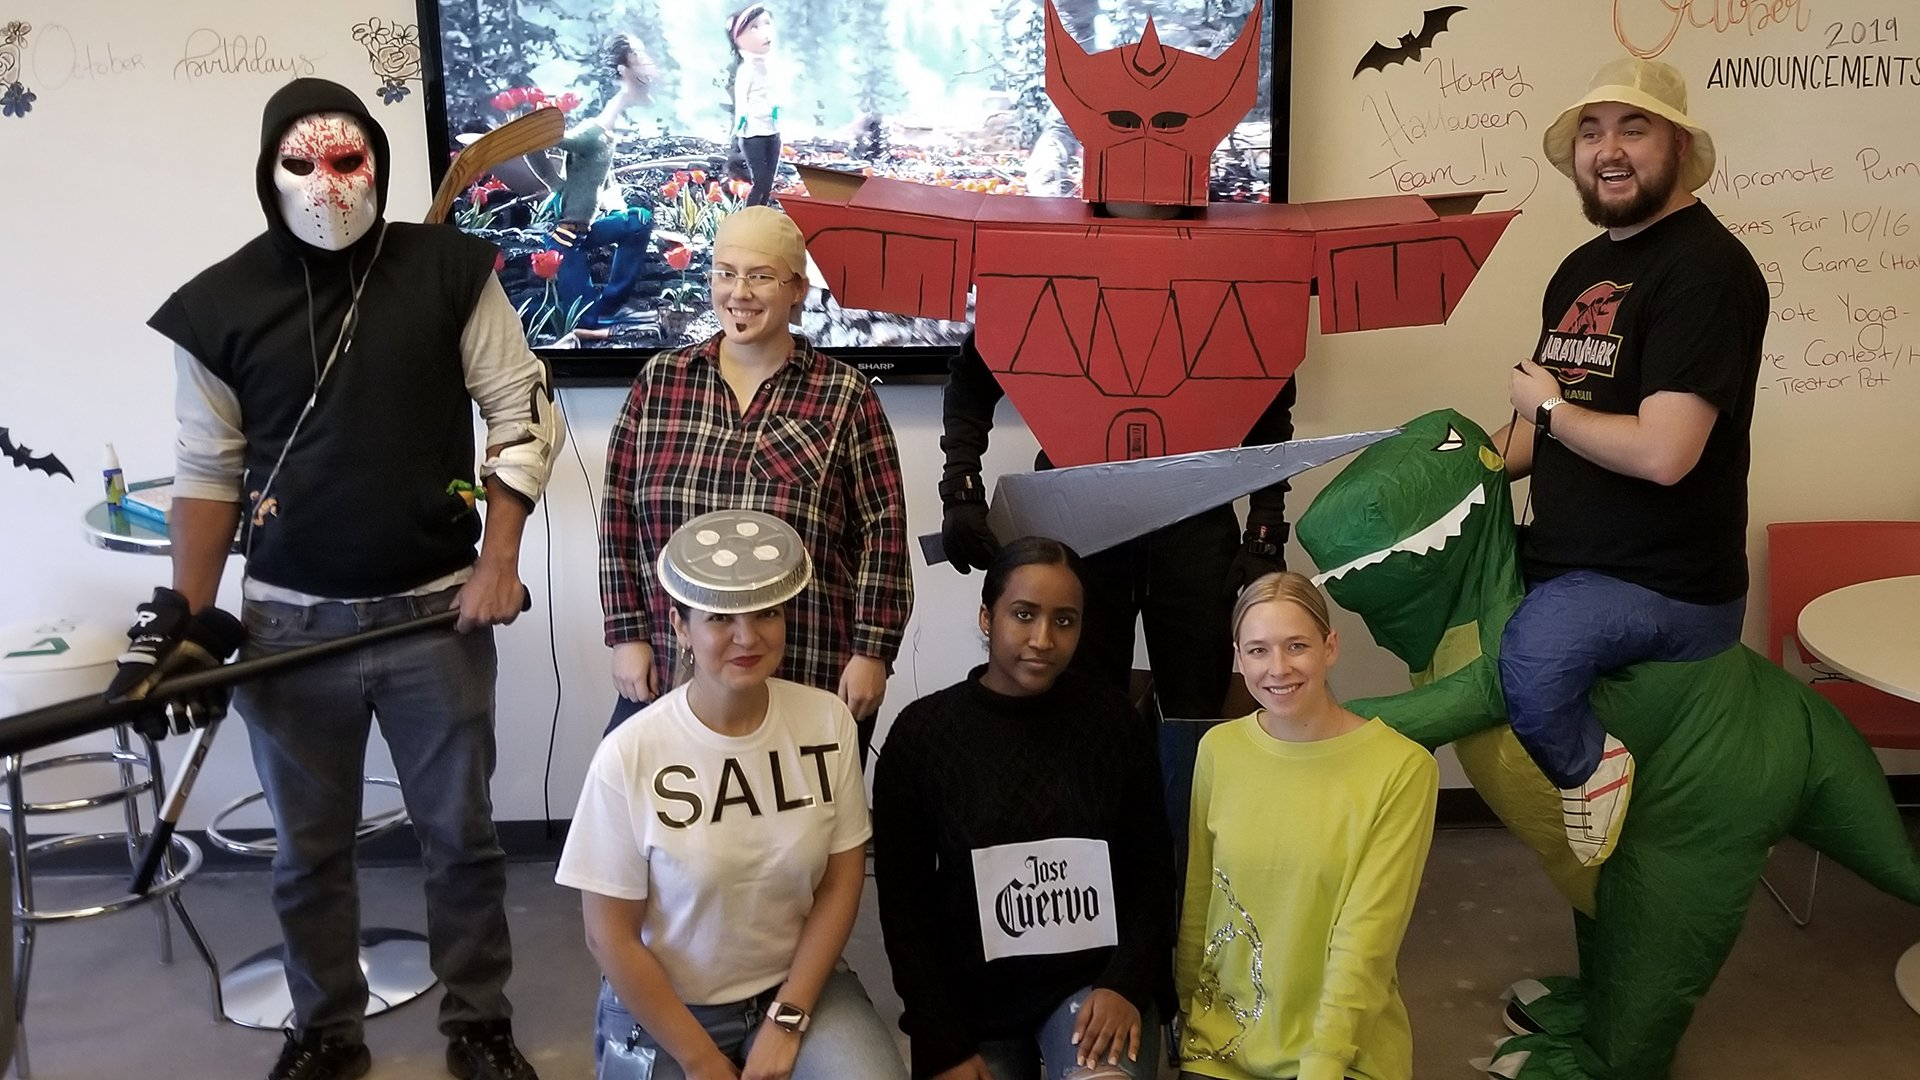 Wpromote team in Halloween costumes